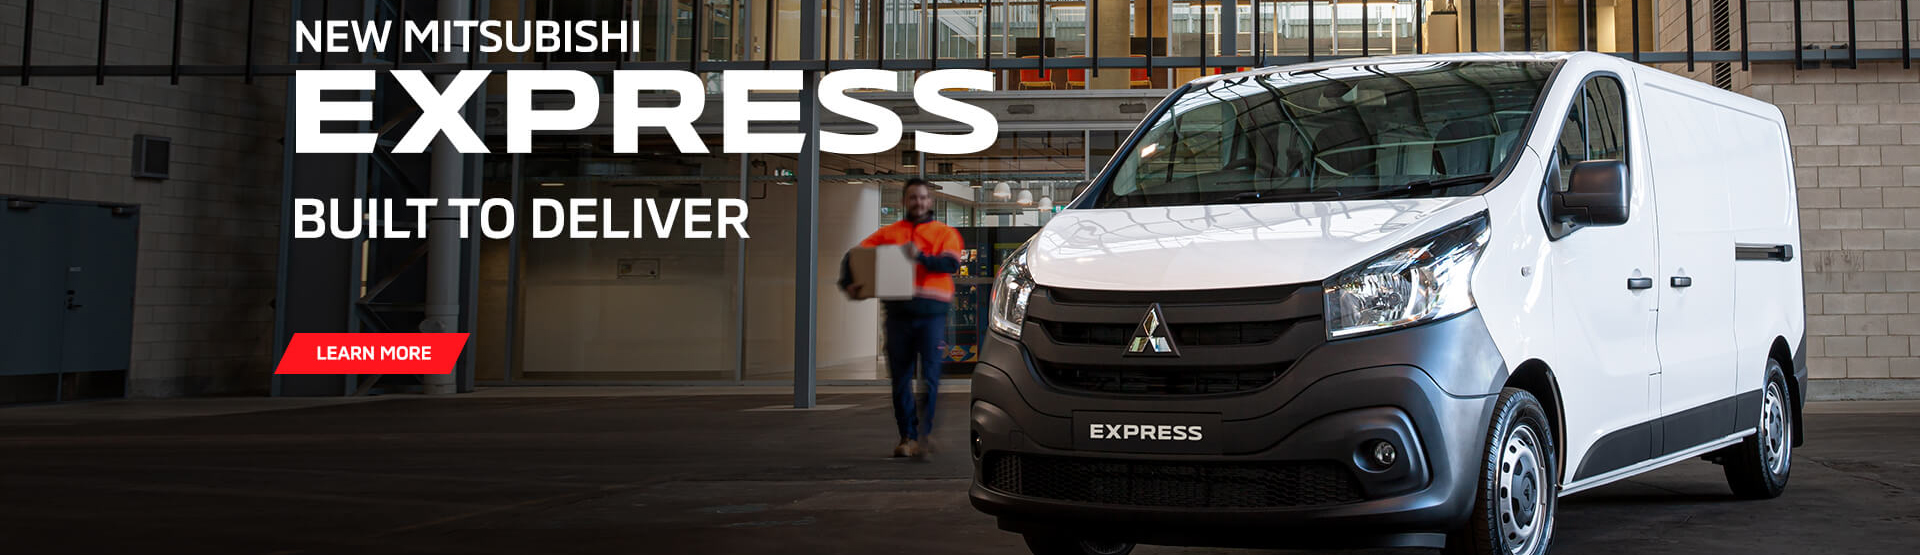 MITSUBISHI EXPRESS. BUILT TO DELIVER.